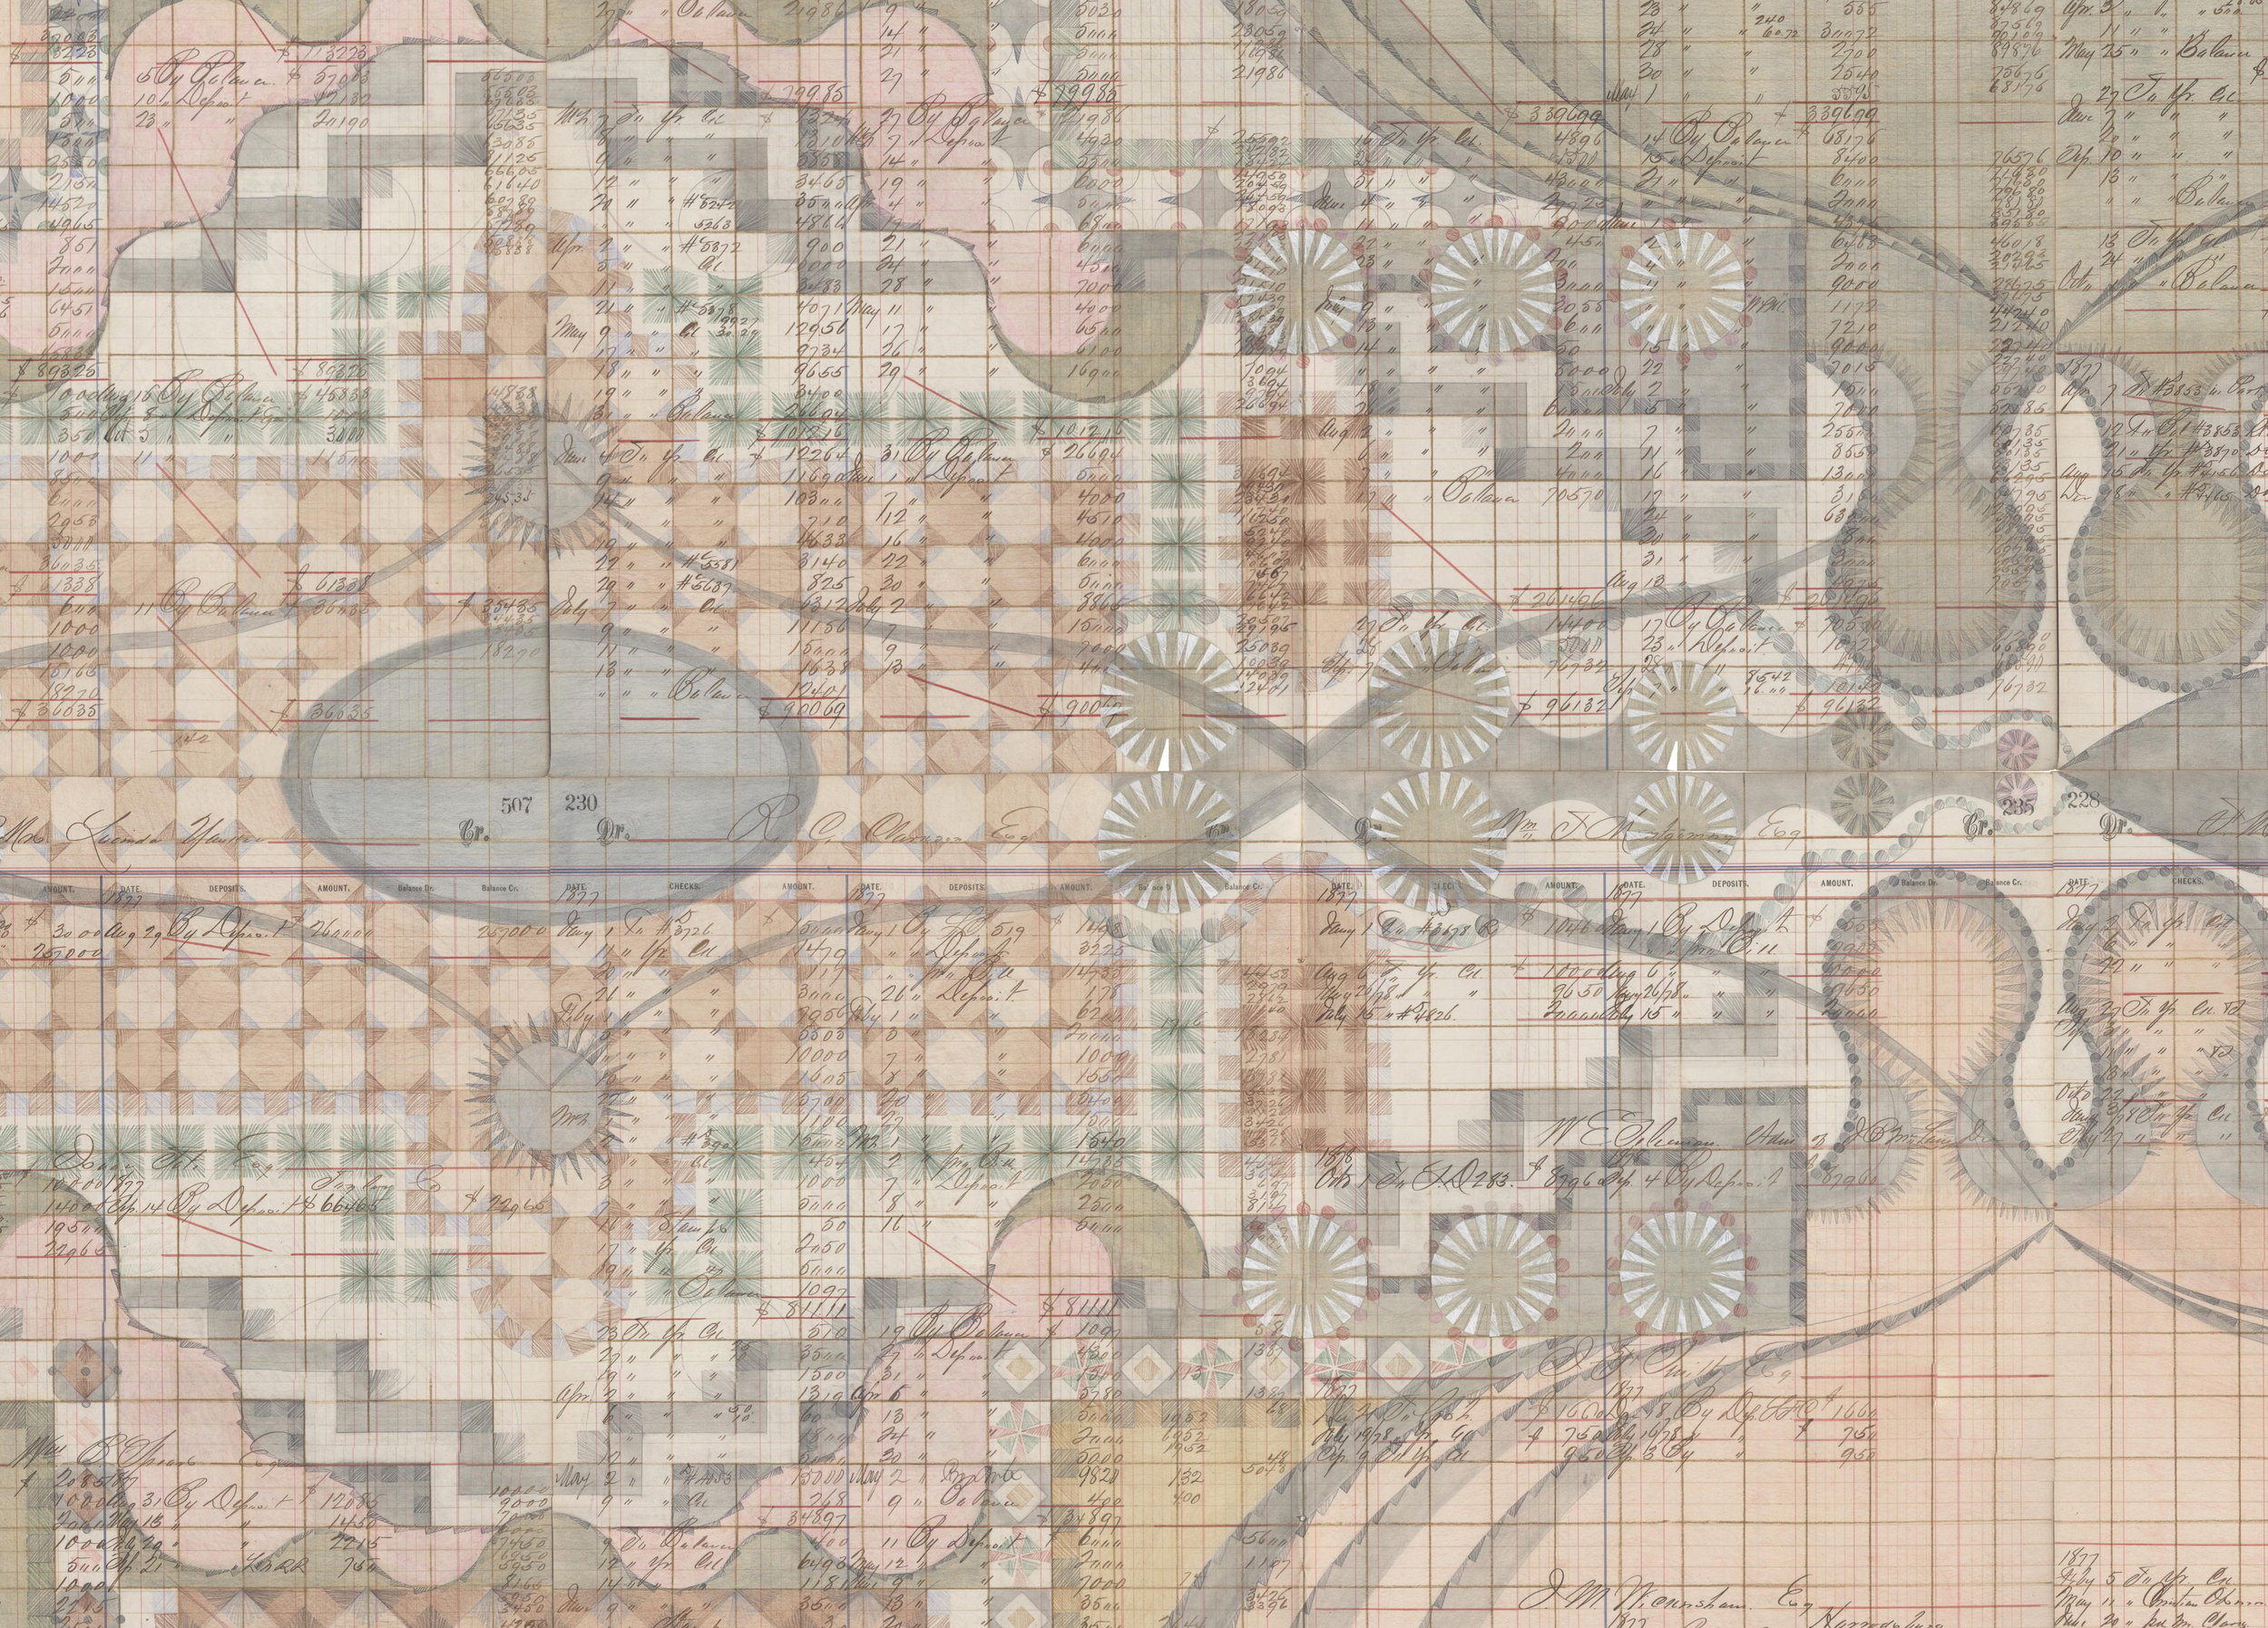 DETAIL of Stepwell Garden, Colored Pencil and Graphite on Antique Ledger Book Pages. 78 x 94.5 inches